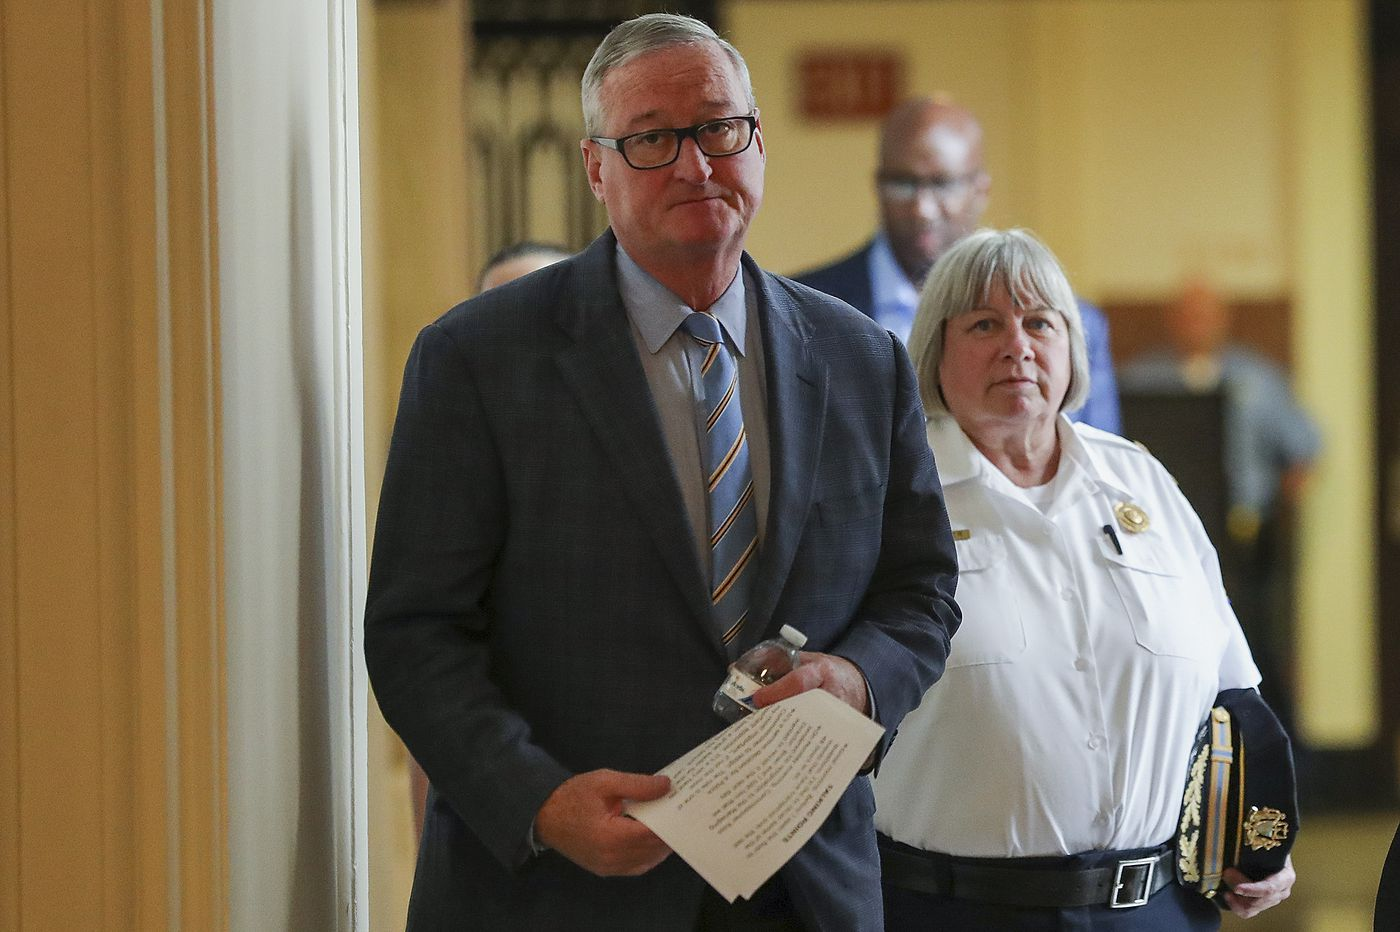 In picking new police commissioner, Mayor Jim Kenney faces defining choice